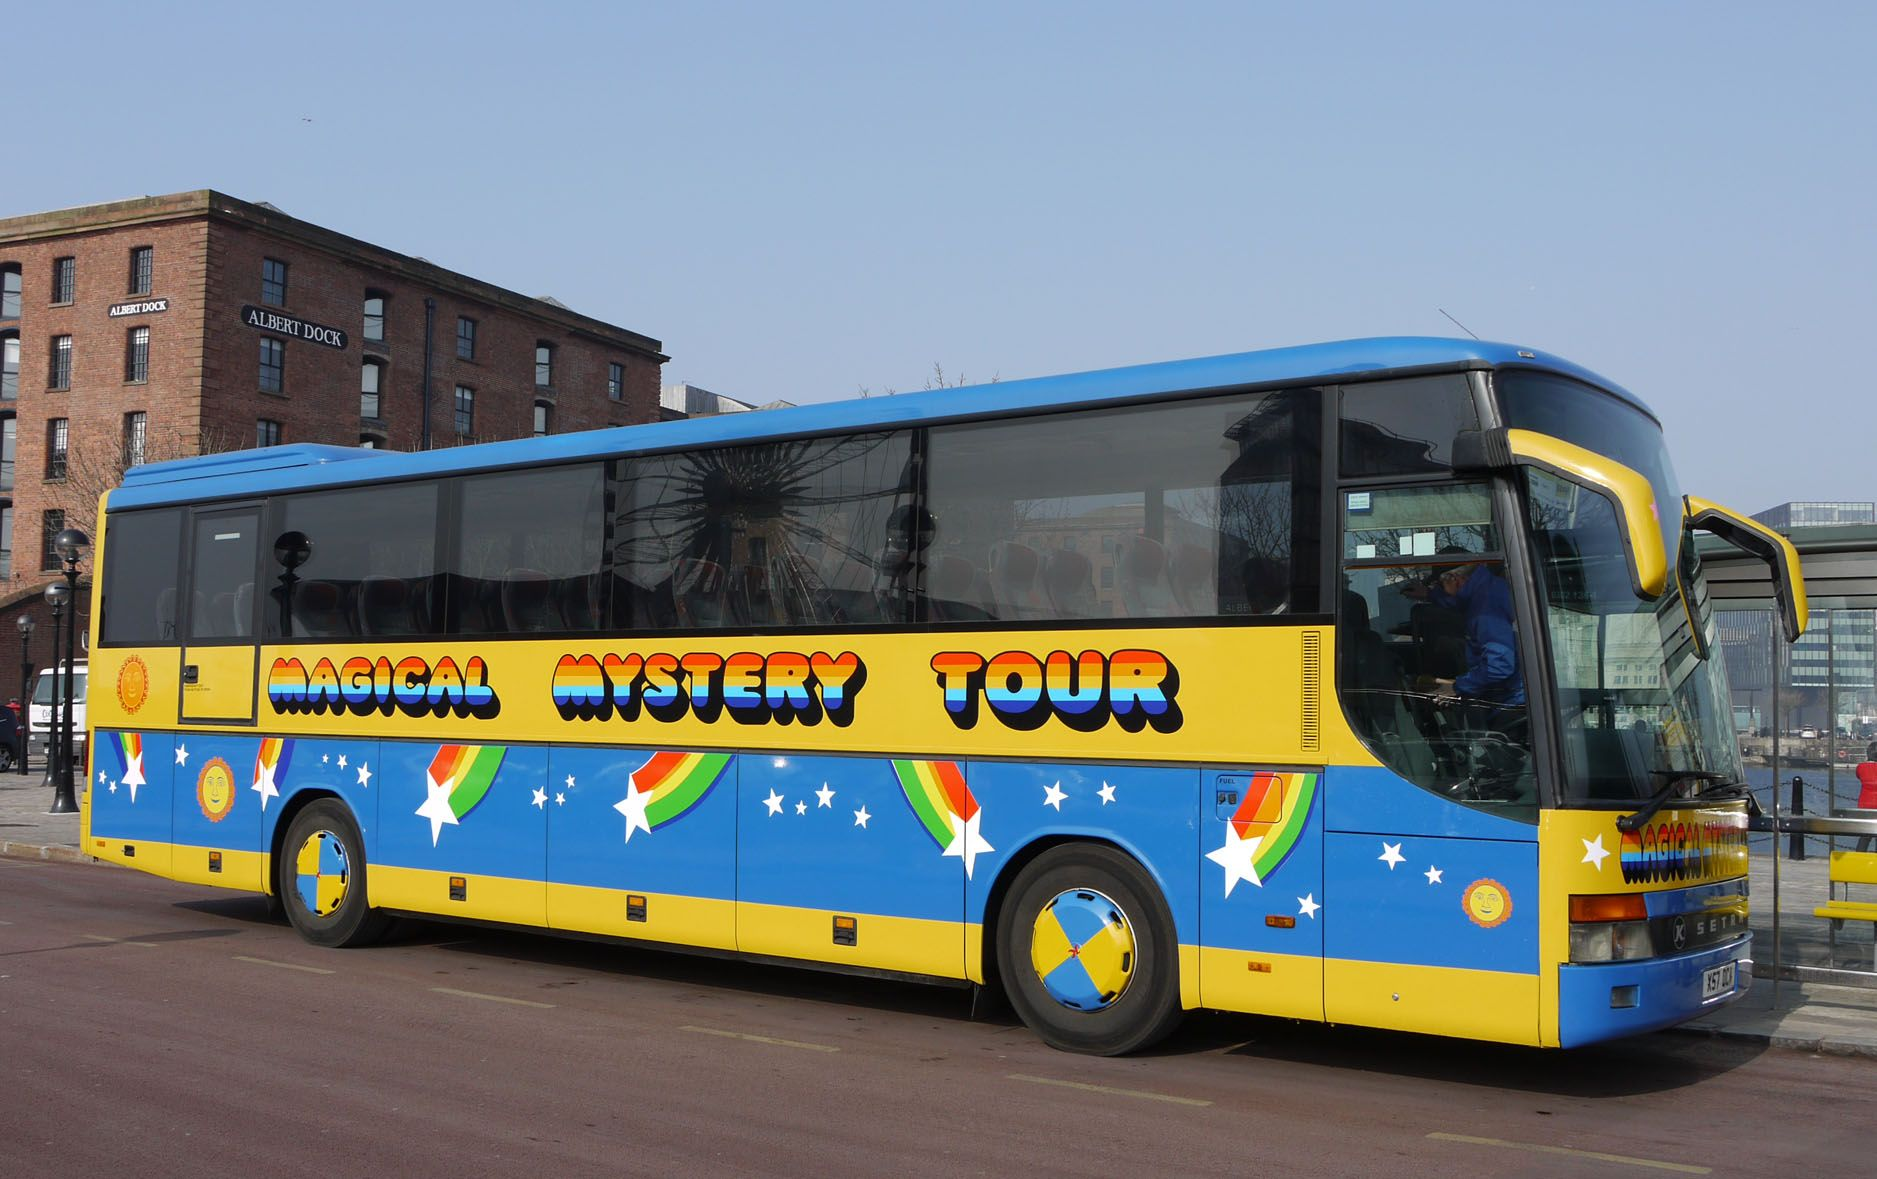 Step aboard the colourful Magical Mystery Tour bus for a fun and fascinating 2 hour tour of Beatles Liverpool. You'll see all the places associated with John, Paul, George and Ringo as they grew up, met and formed the band … Read more…